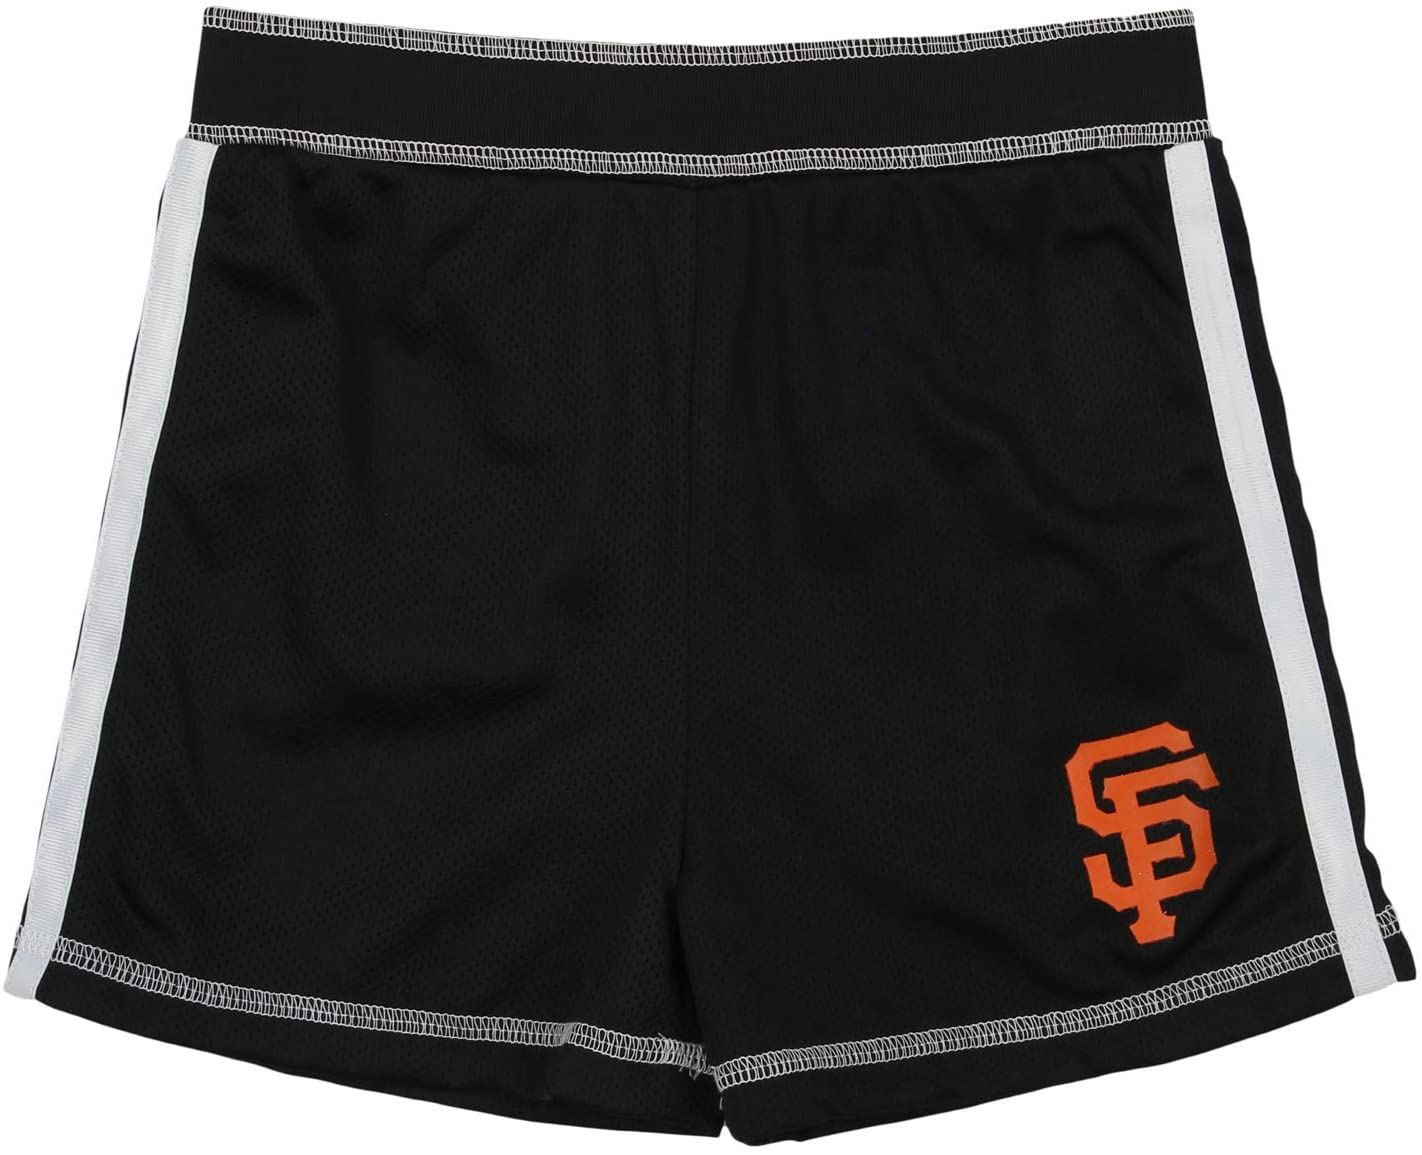 Outerstuff MLB Youth Girls San Francisco Giants Batter Up Mesh Shorts